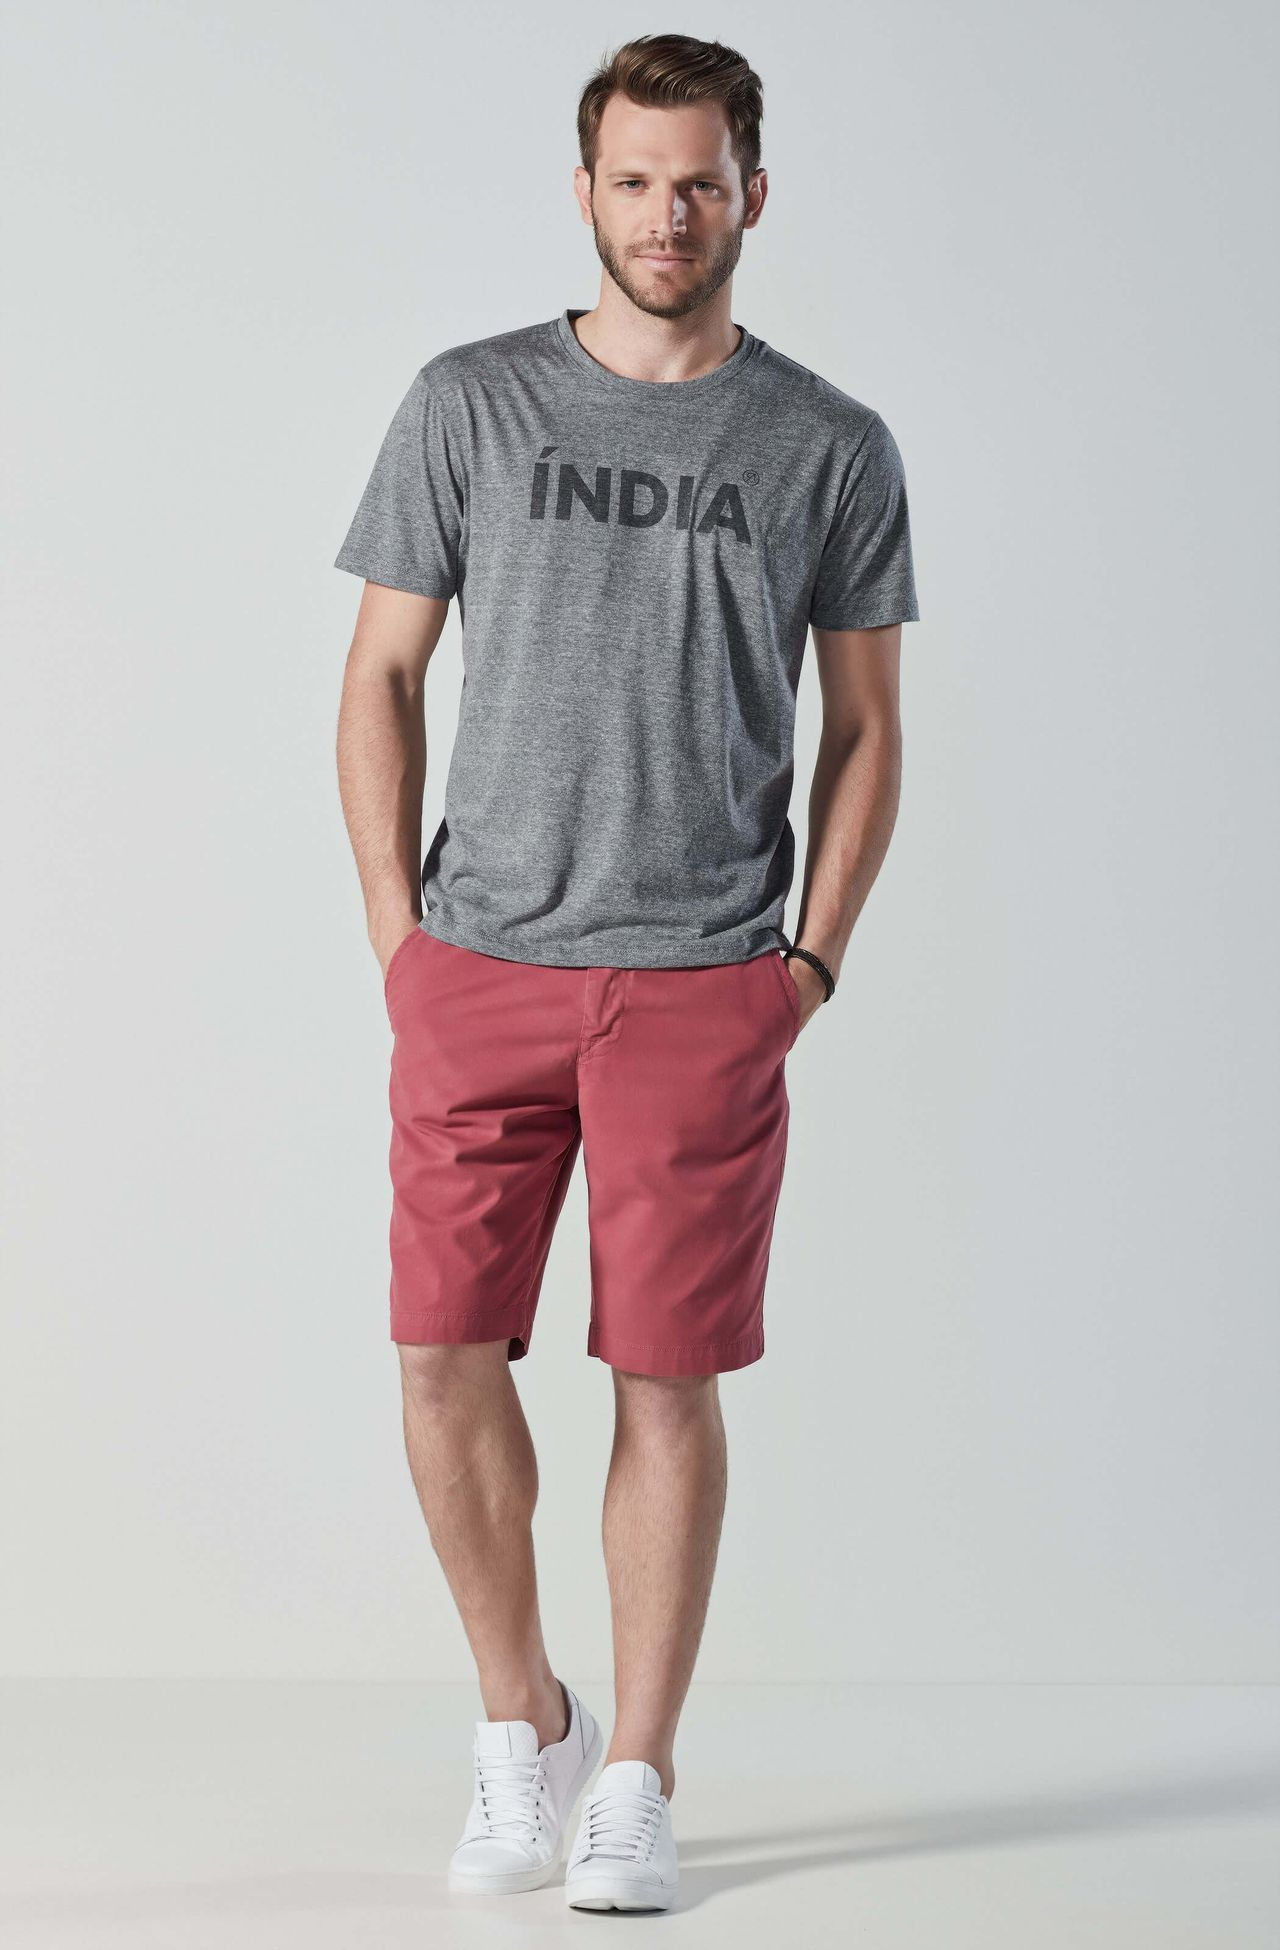 8353CCZ00050_945_2-TSHIRT-MC-INDIA